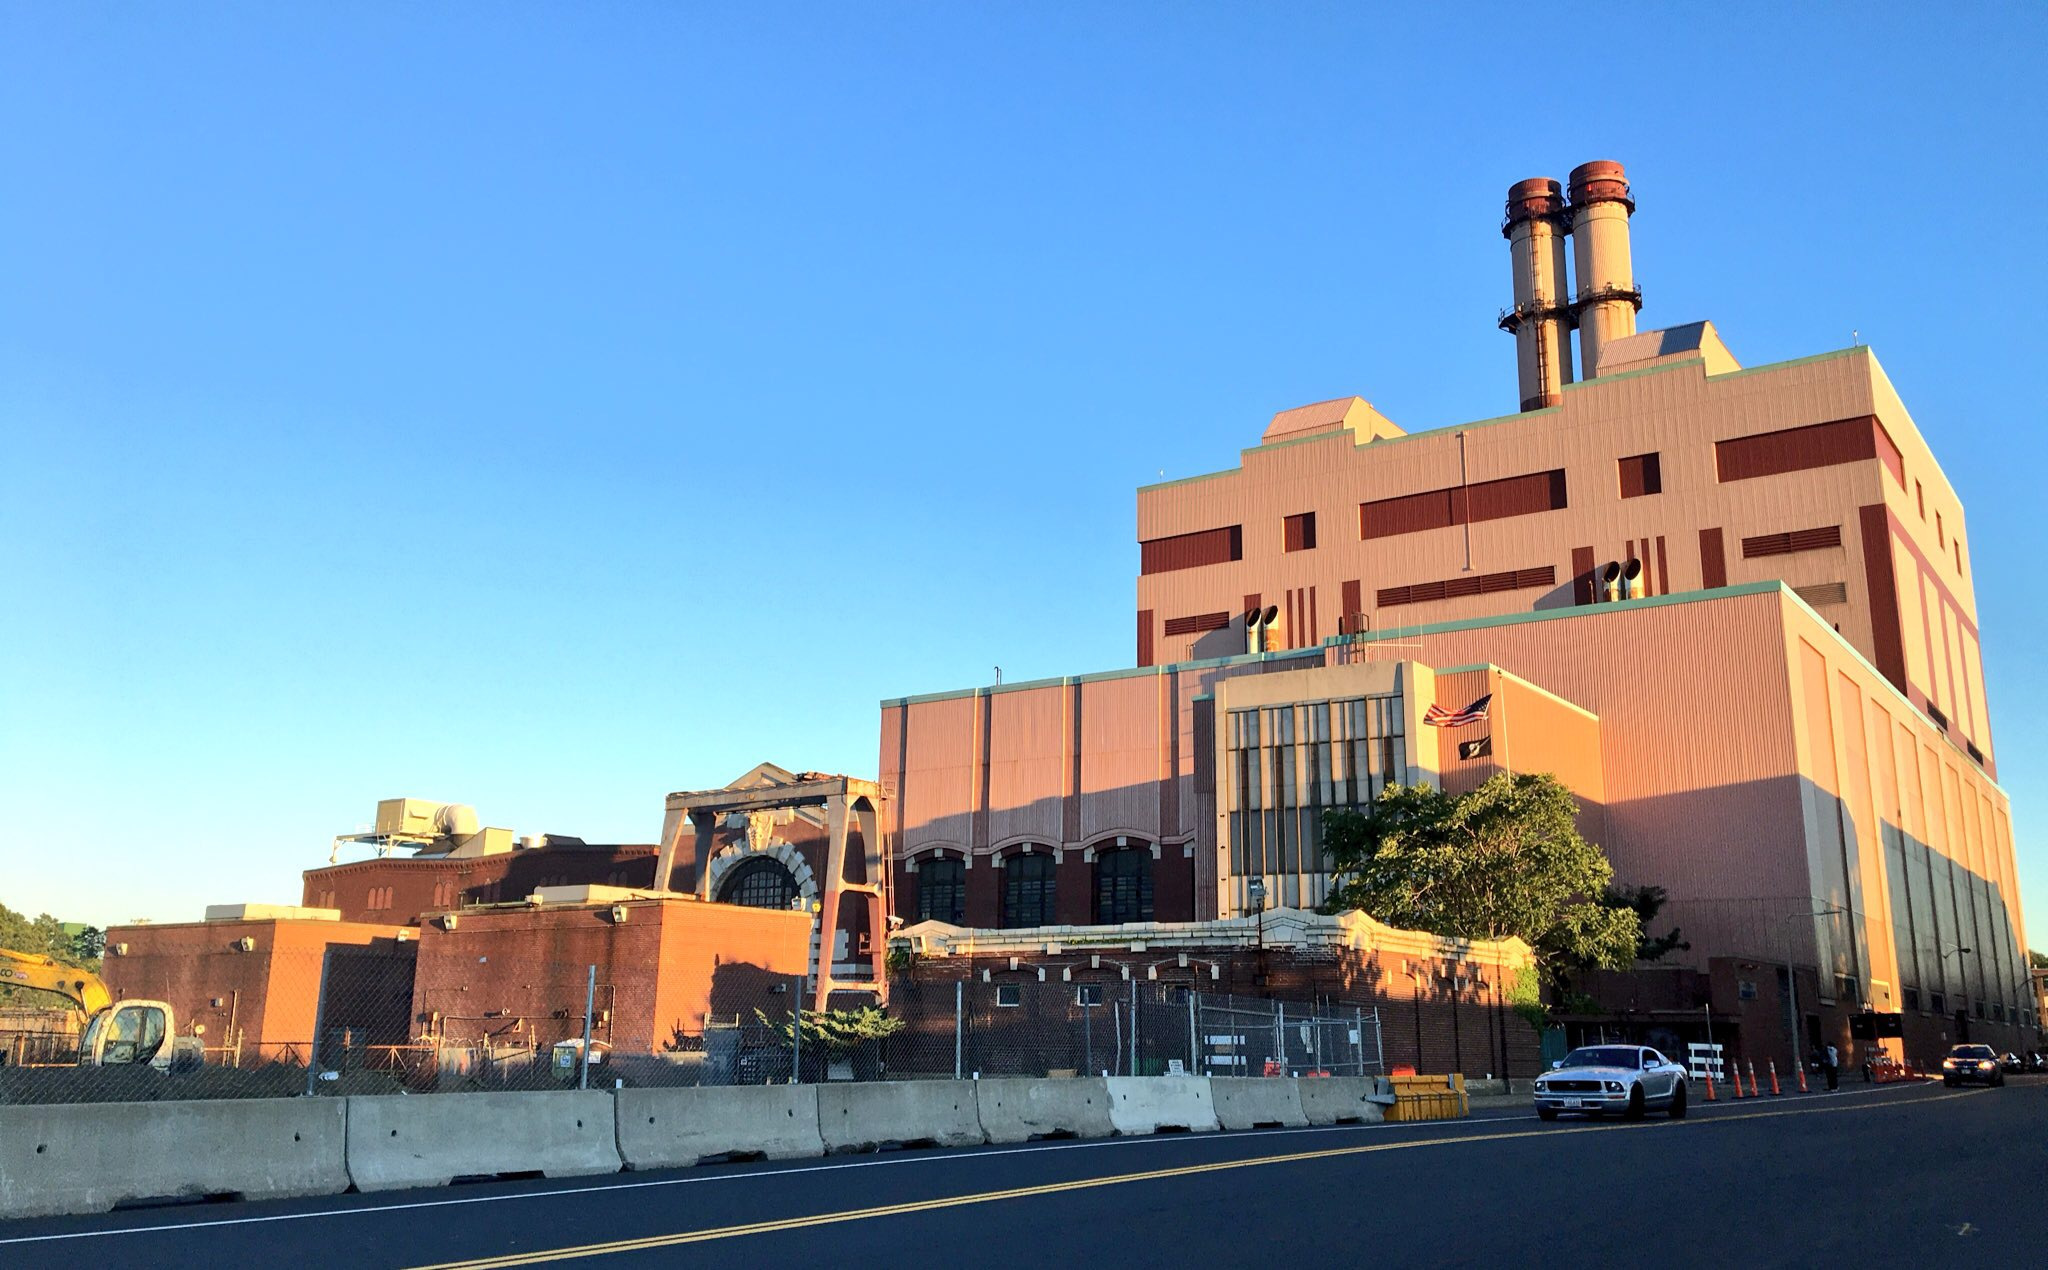 The  power plant that looms over  South Boston on Summer Street and East 1st Street